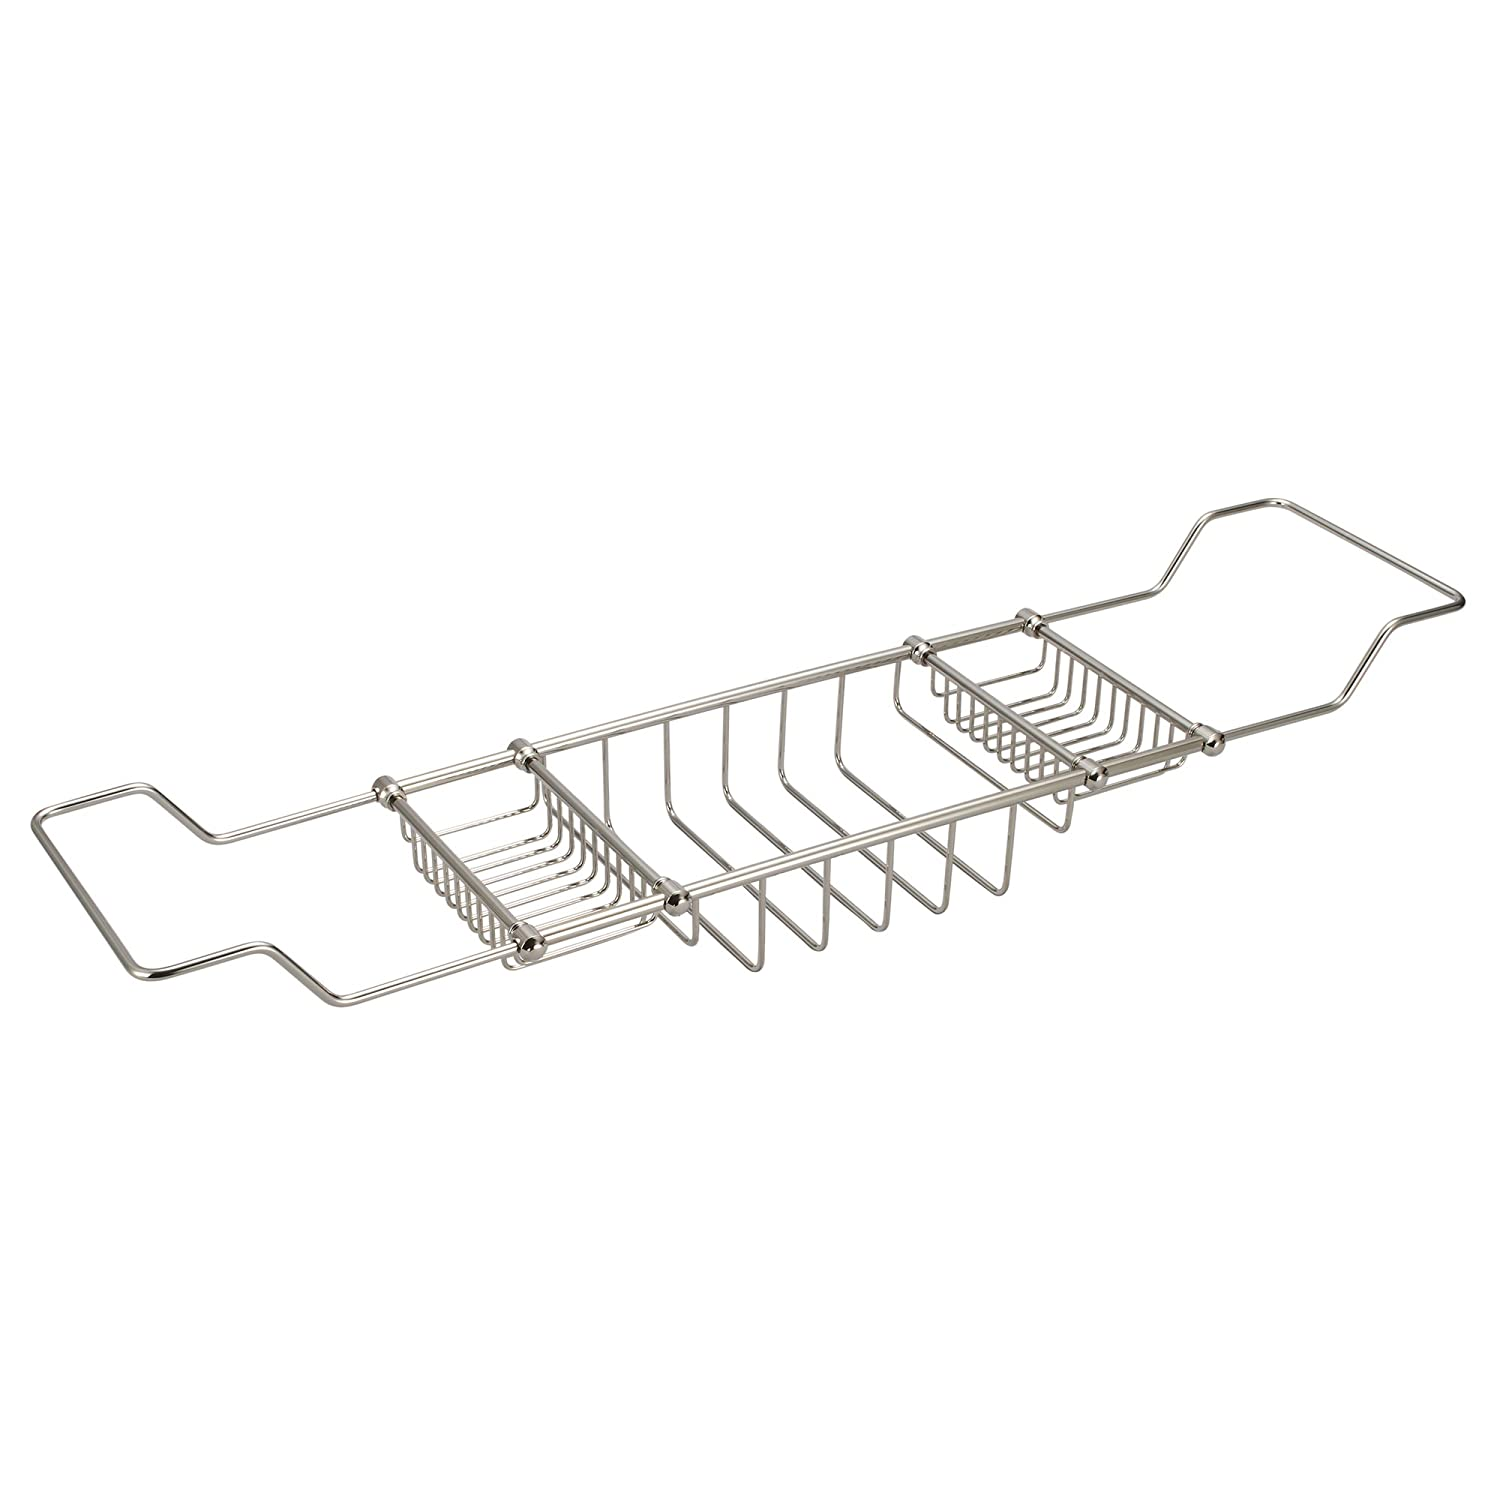 Water Creation BC-0001-05 Expandable Bath Caddy for The Elegant Tub